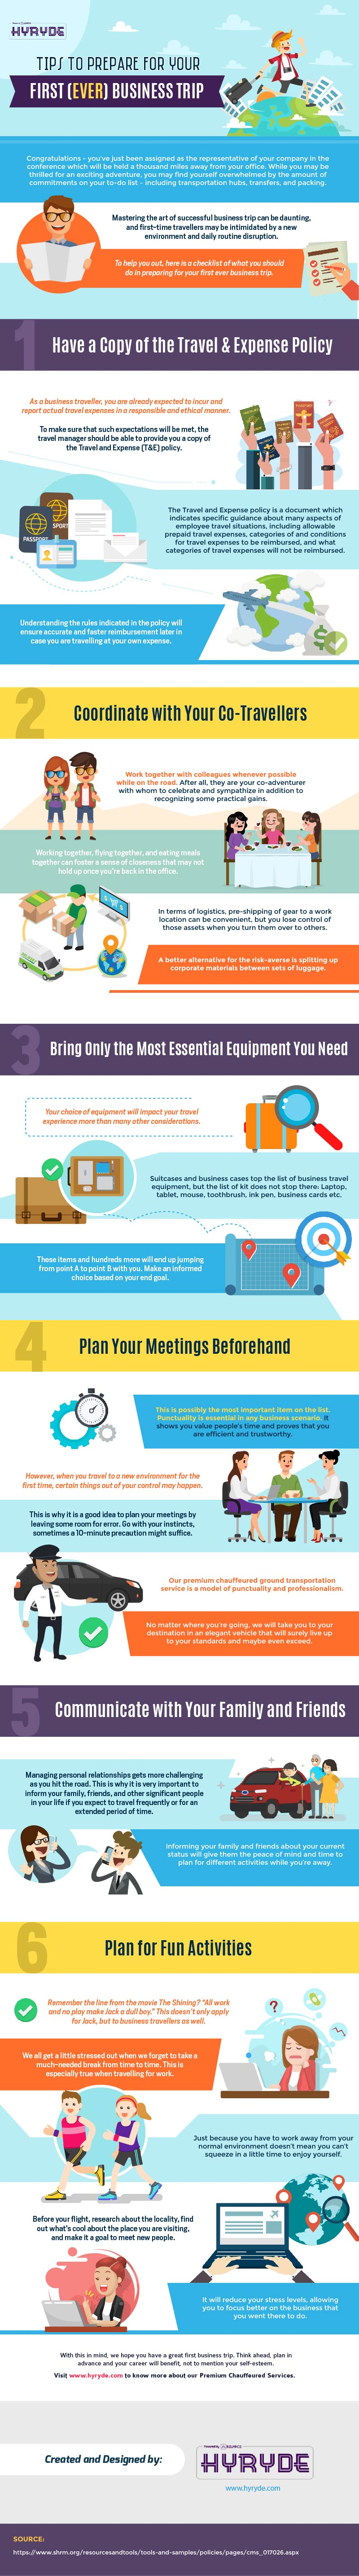 Tips to Prepare for Your First Business Trip